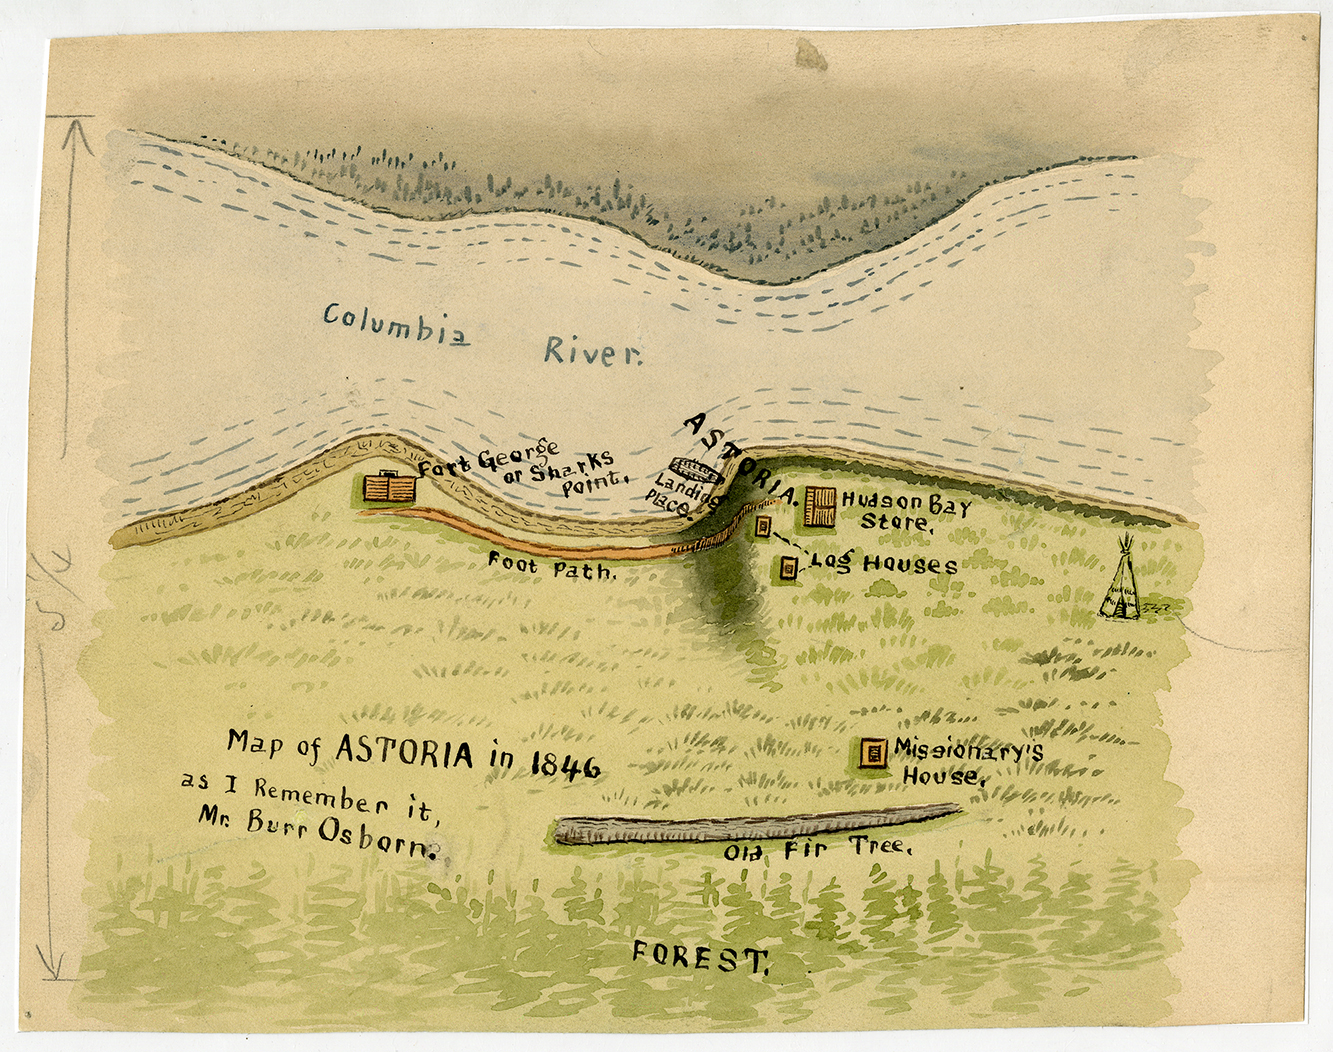 Map Of Astoria 1846 The Maker Of This Map Burr Osborn Survived The 1846 Wreck Of The Shark A U S Navy Schooner In The Dangerous Waters Of The